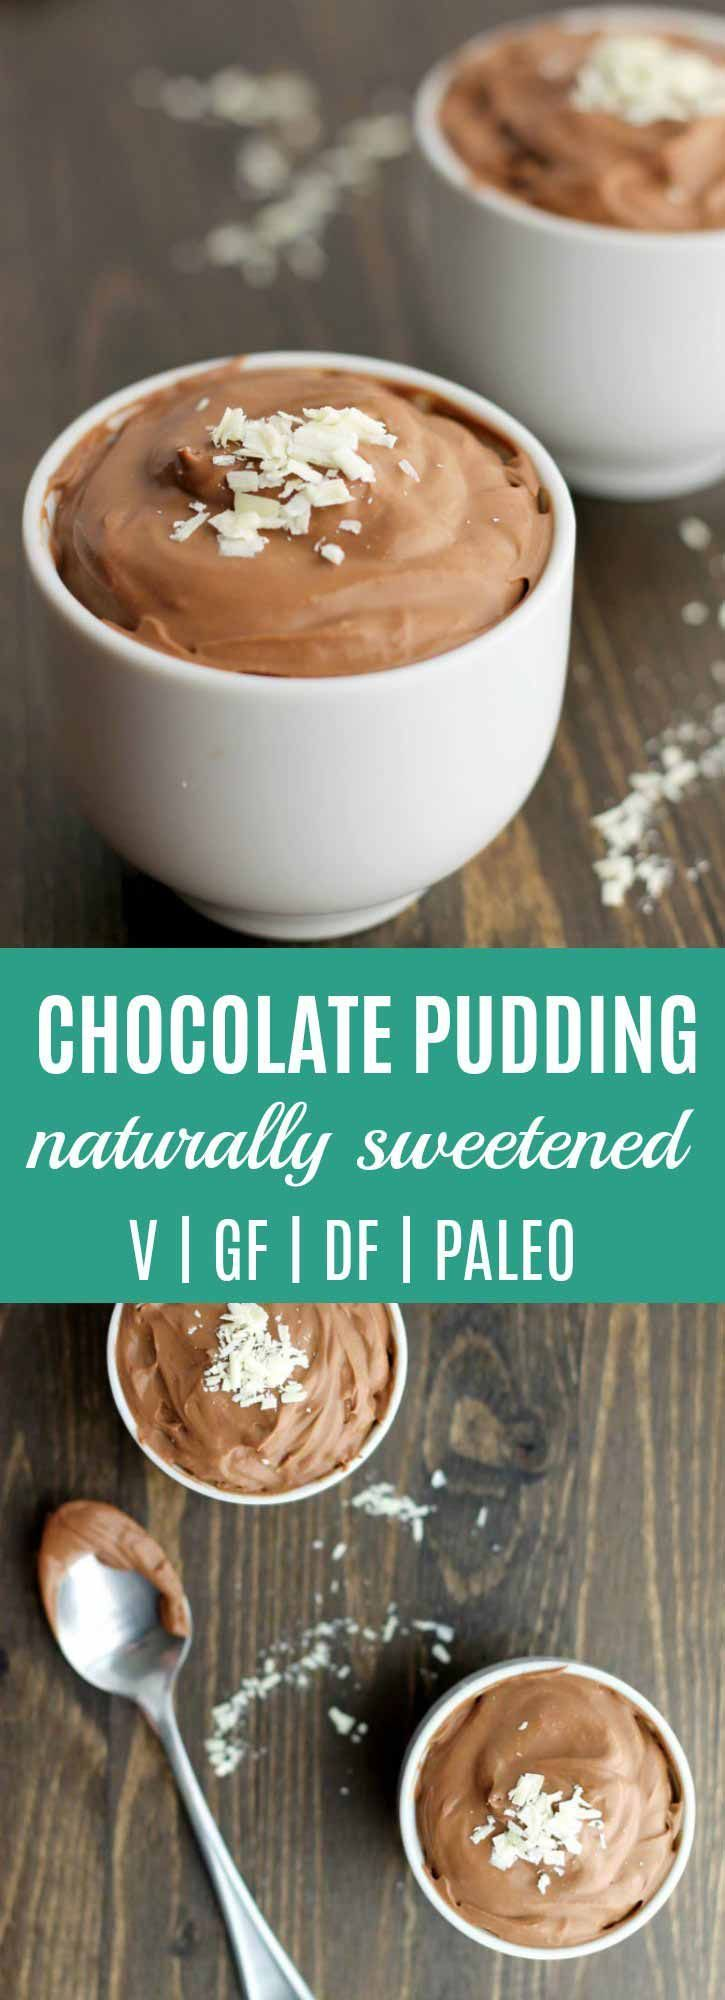 Chocolate Pudding Recipe {Vegan, Coconut Milk, Paleo} | So easy to make, naturally sweetened, no eggs, & thickened with Paleo friendly arrowroot powder. Kids LOVE it!! | thenourishedfamily.com